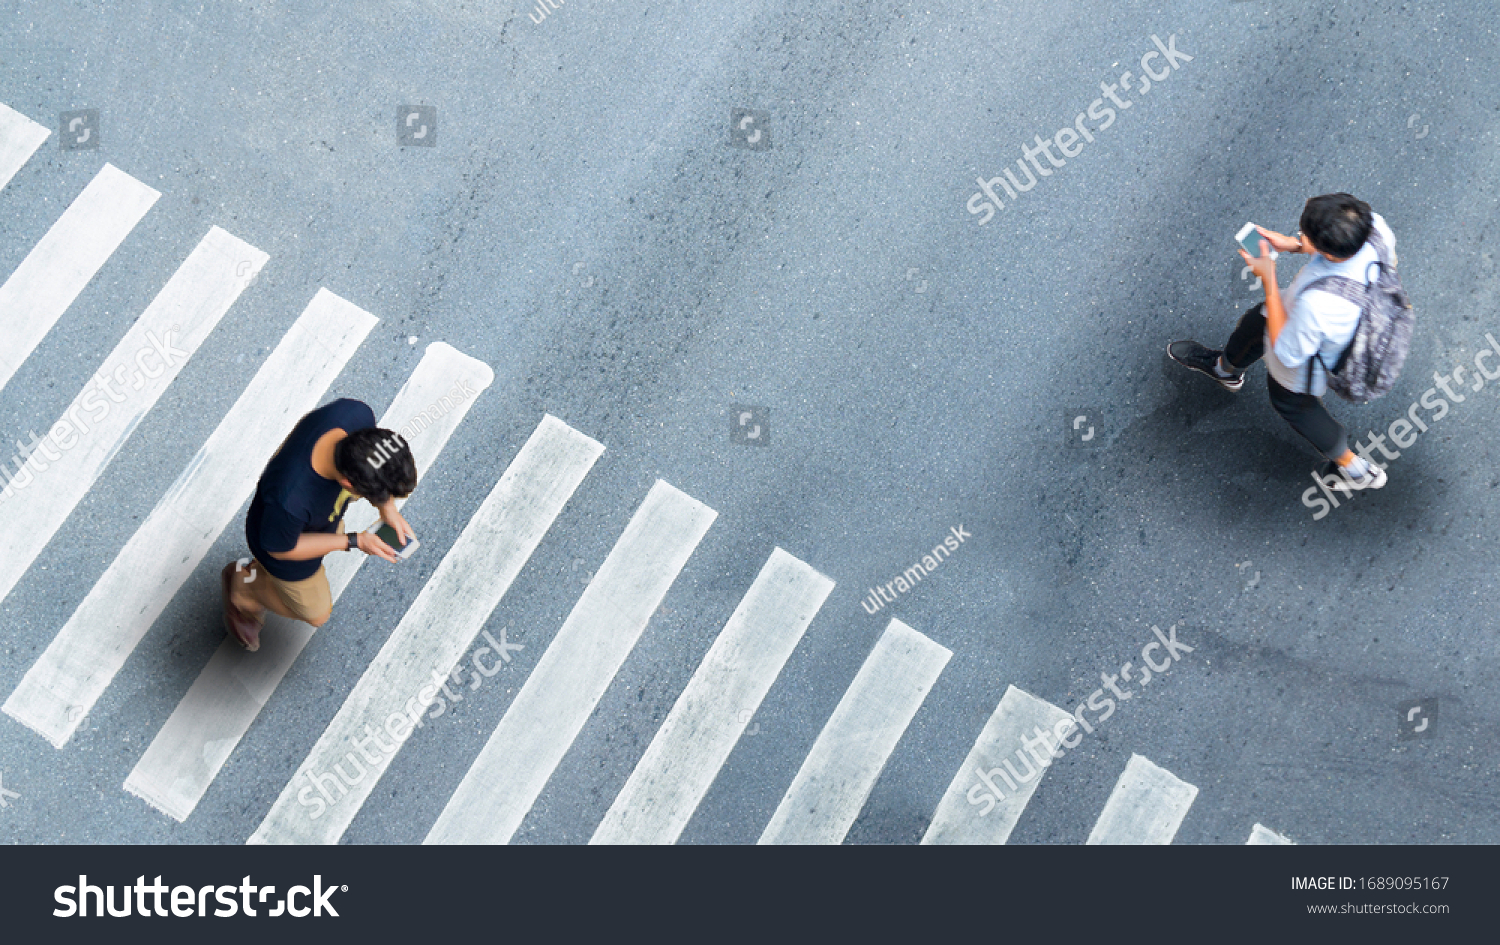 Human life in Social distance. Aerial top view with blur man with smartphone walking converse of other people at pedestrian crosswalk on grey pavement street road with empty space. #1689095167